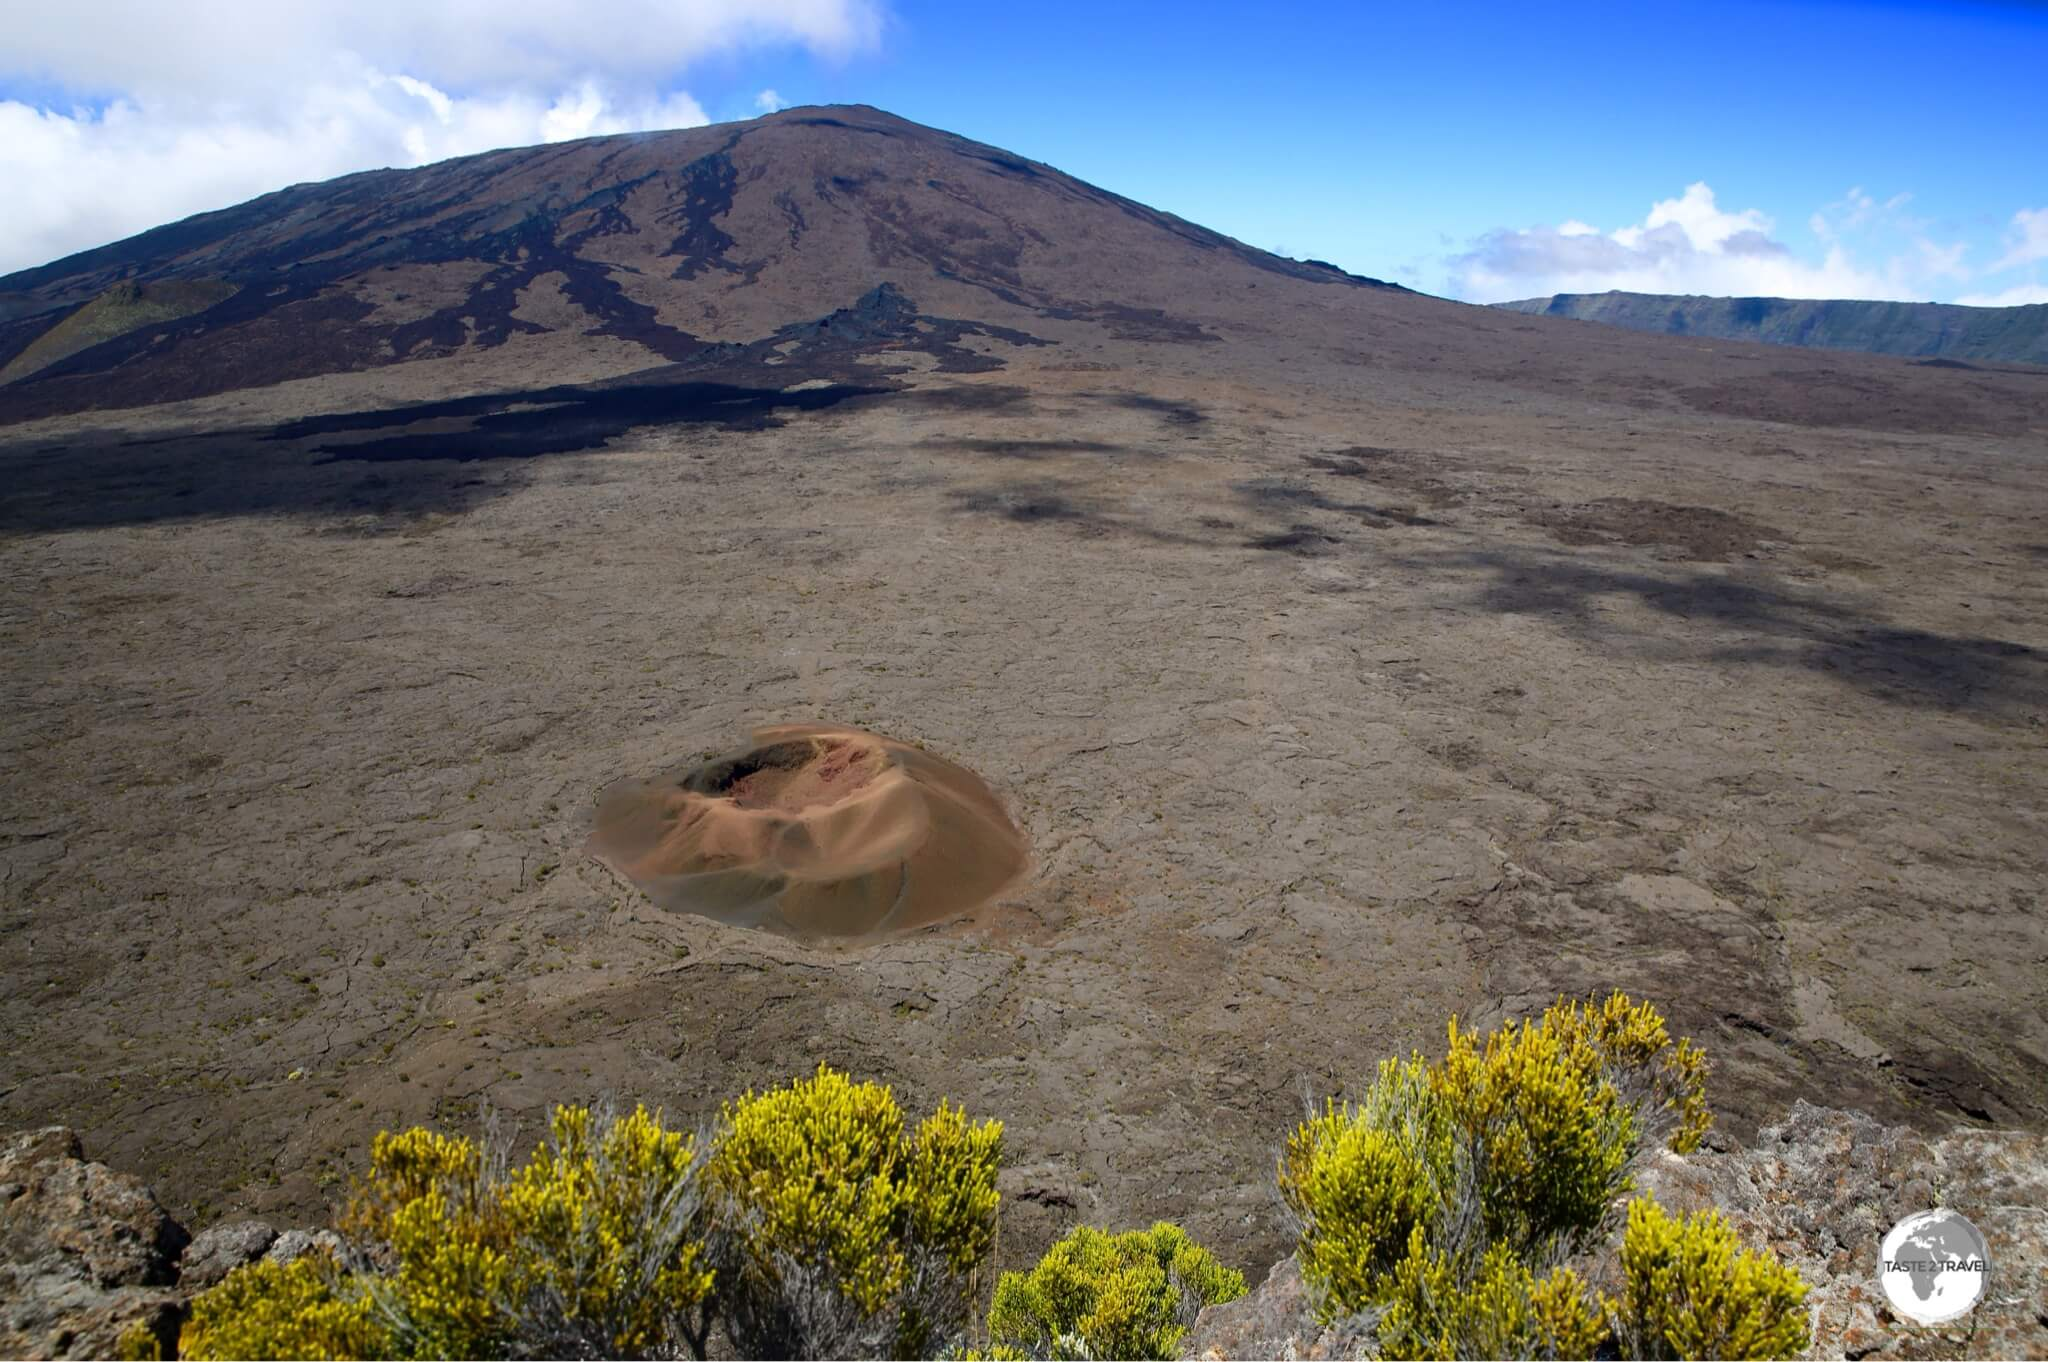 A hiking trail along the ridge of the giant 'enclosure' provides stunning views of different mini-craters such as the 'Formica Leo'.